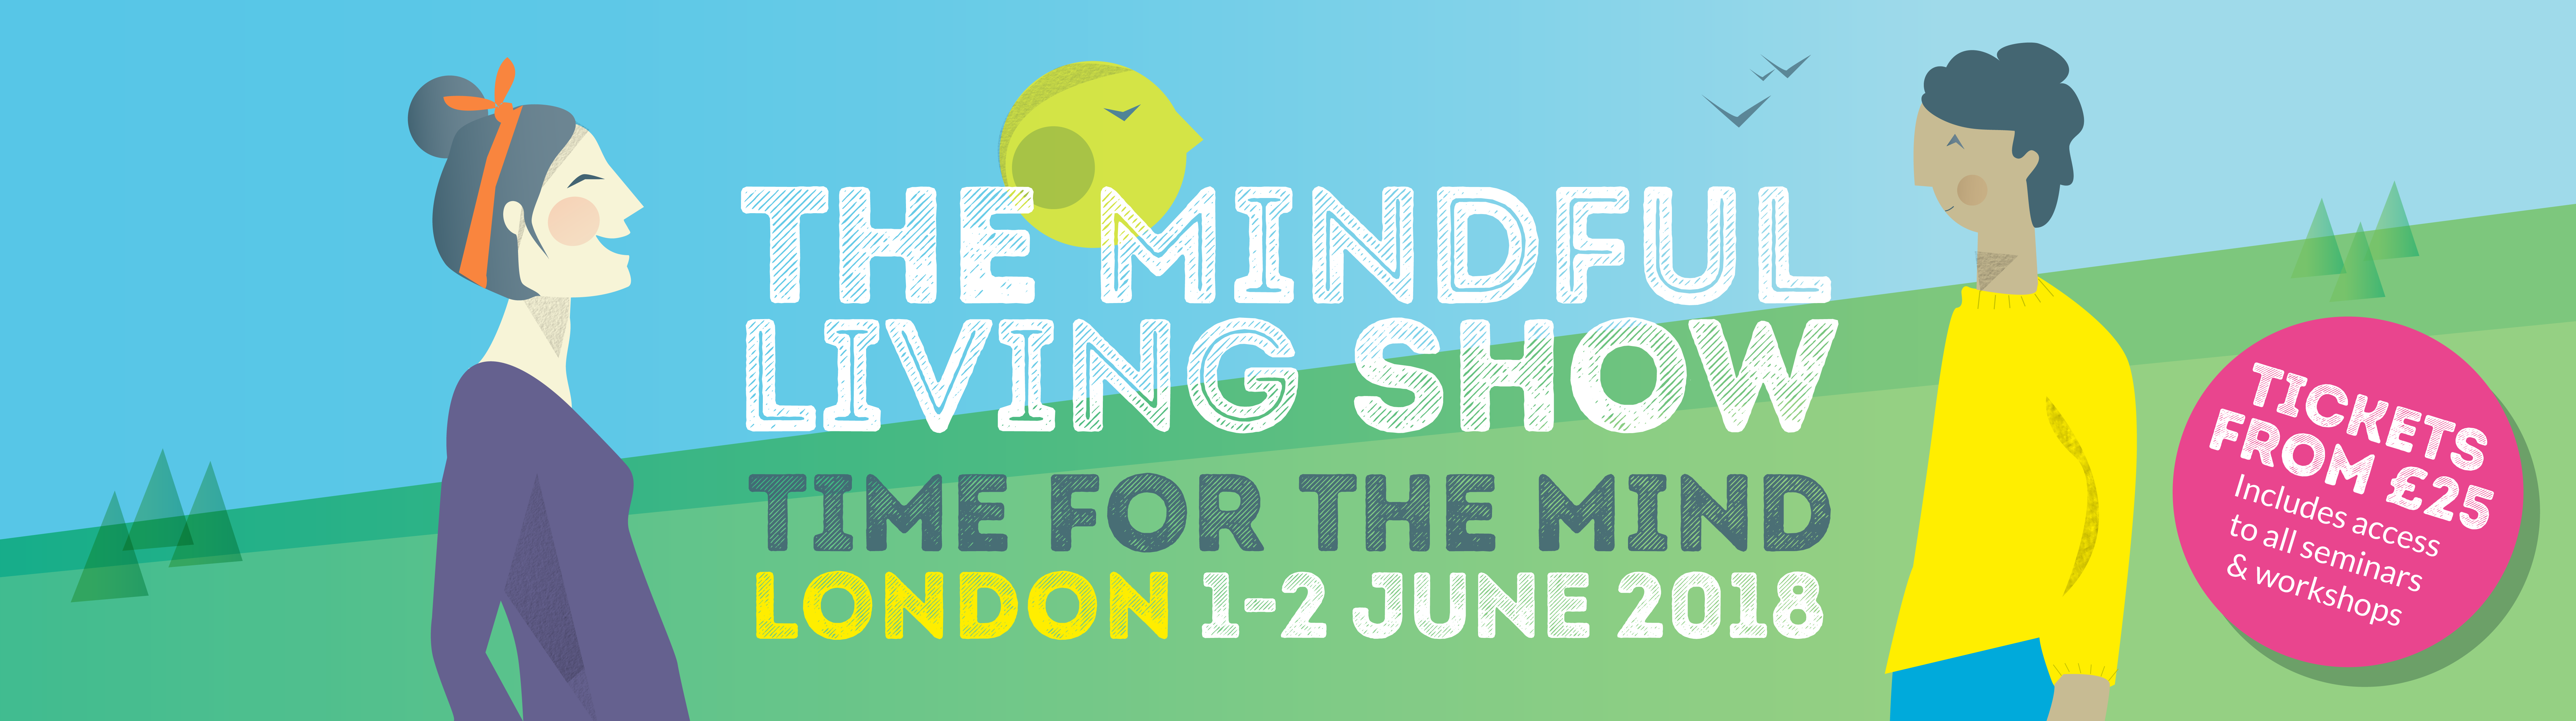 Mindful Living Show Logo